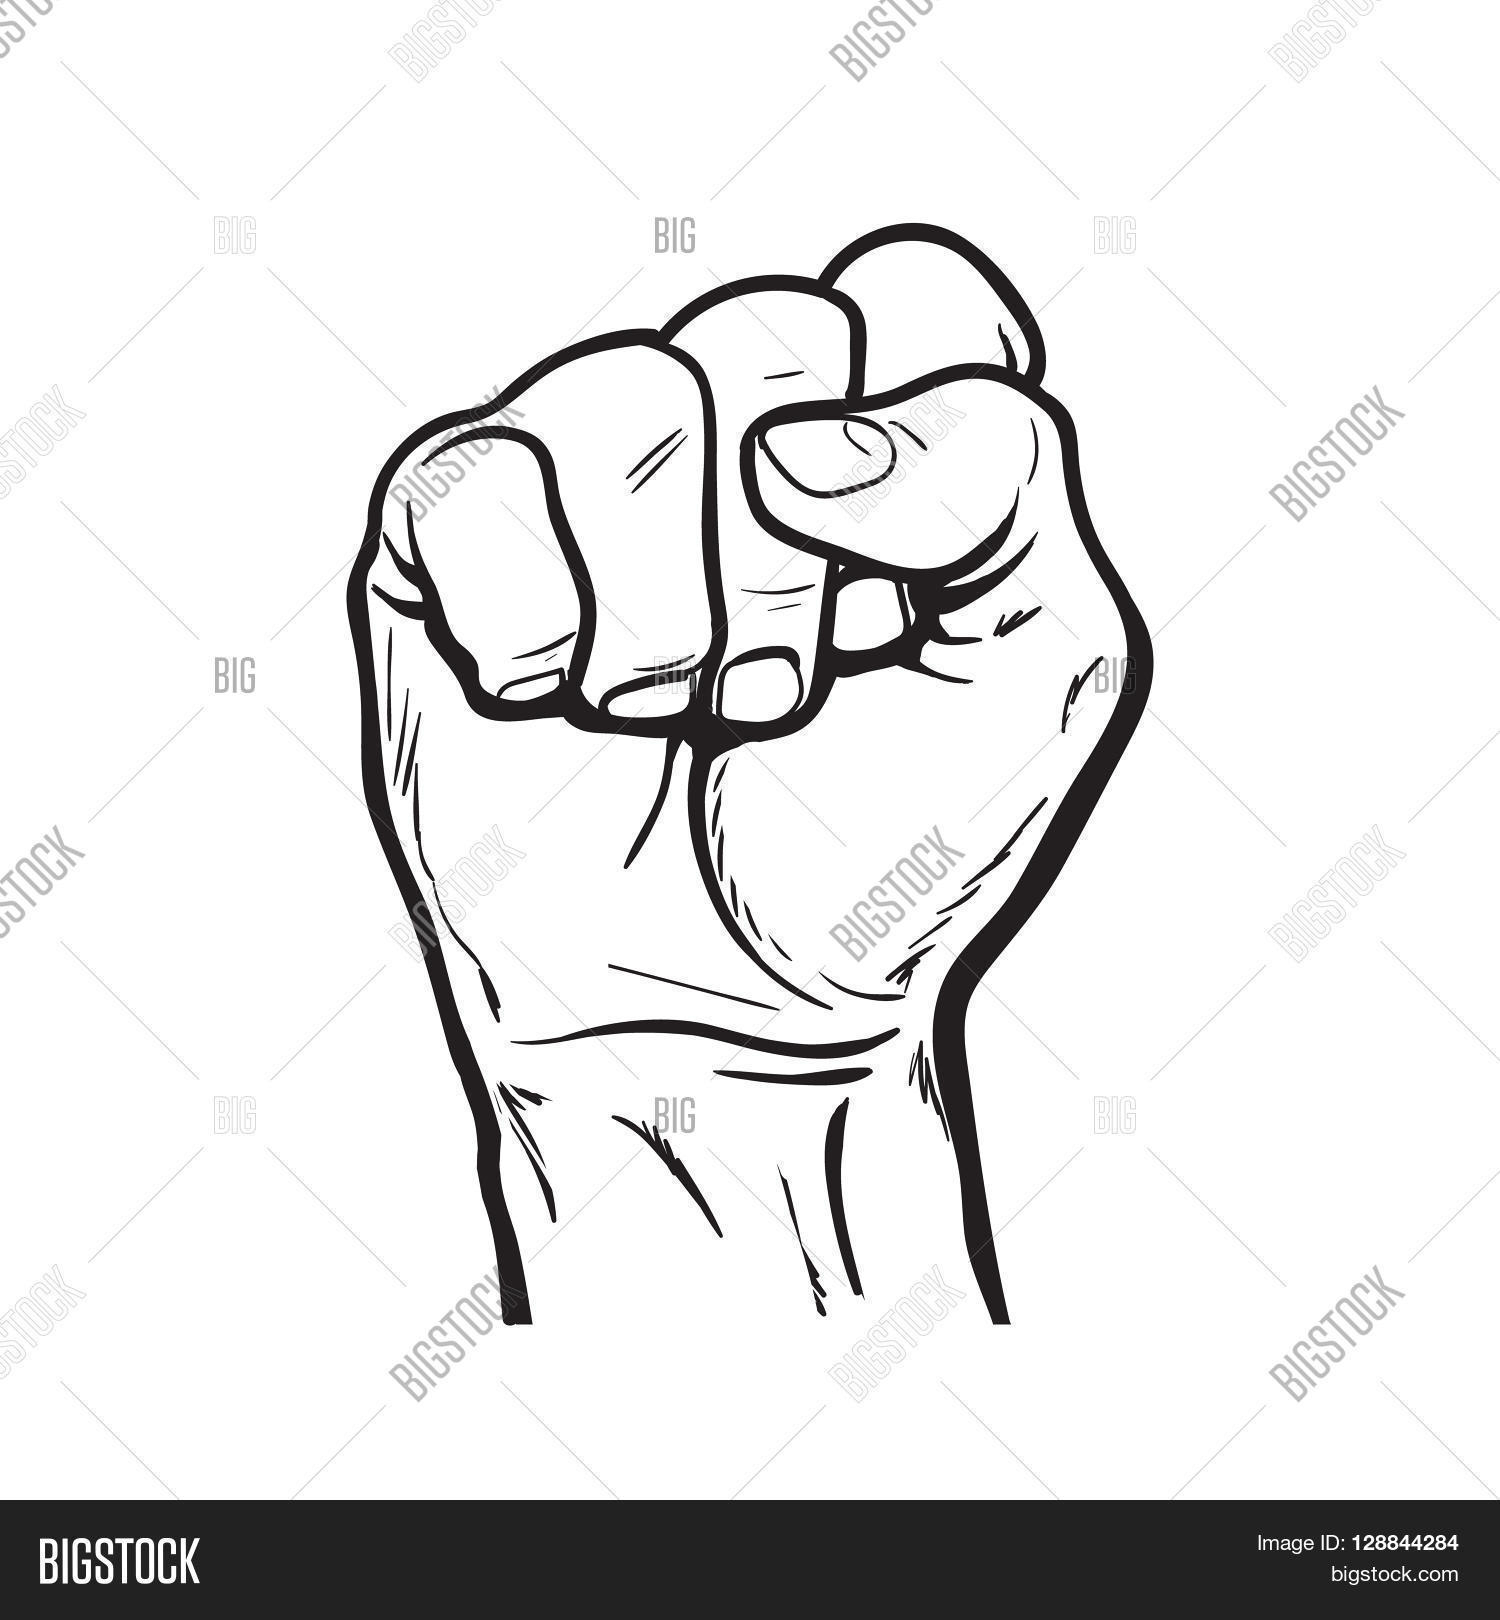 1500x1620 Drawing Of A Fist Drawing Of A Fist Clenched Fist. Hand Clenched